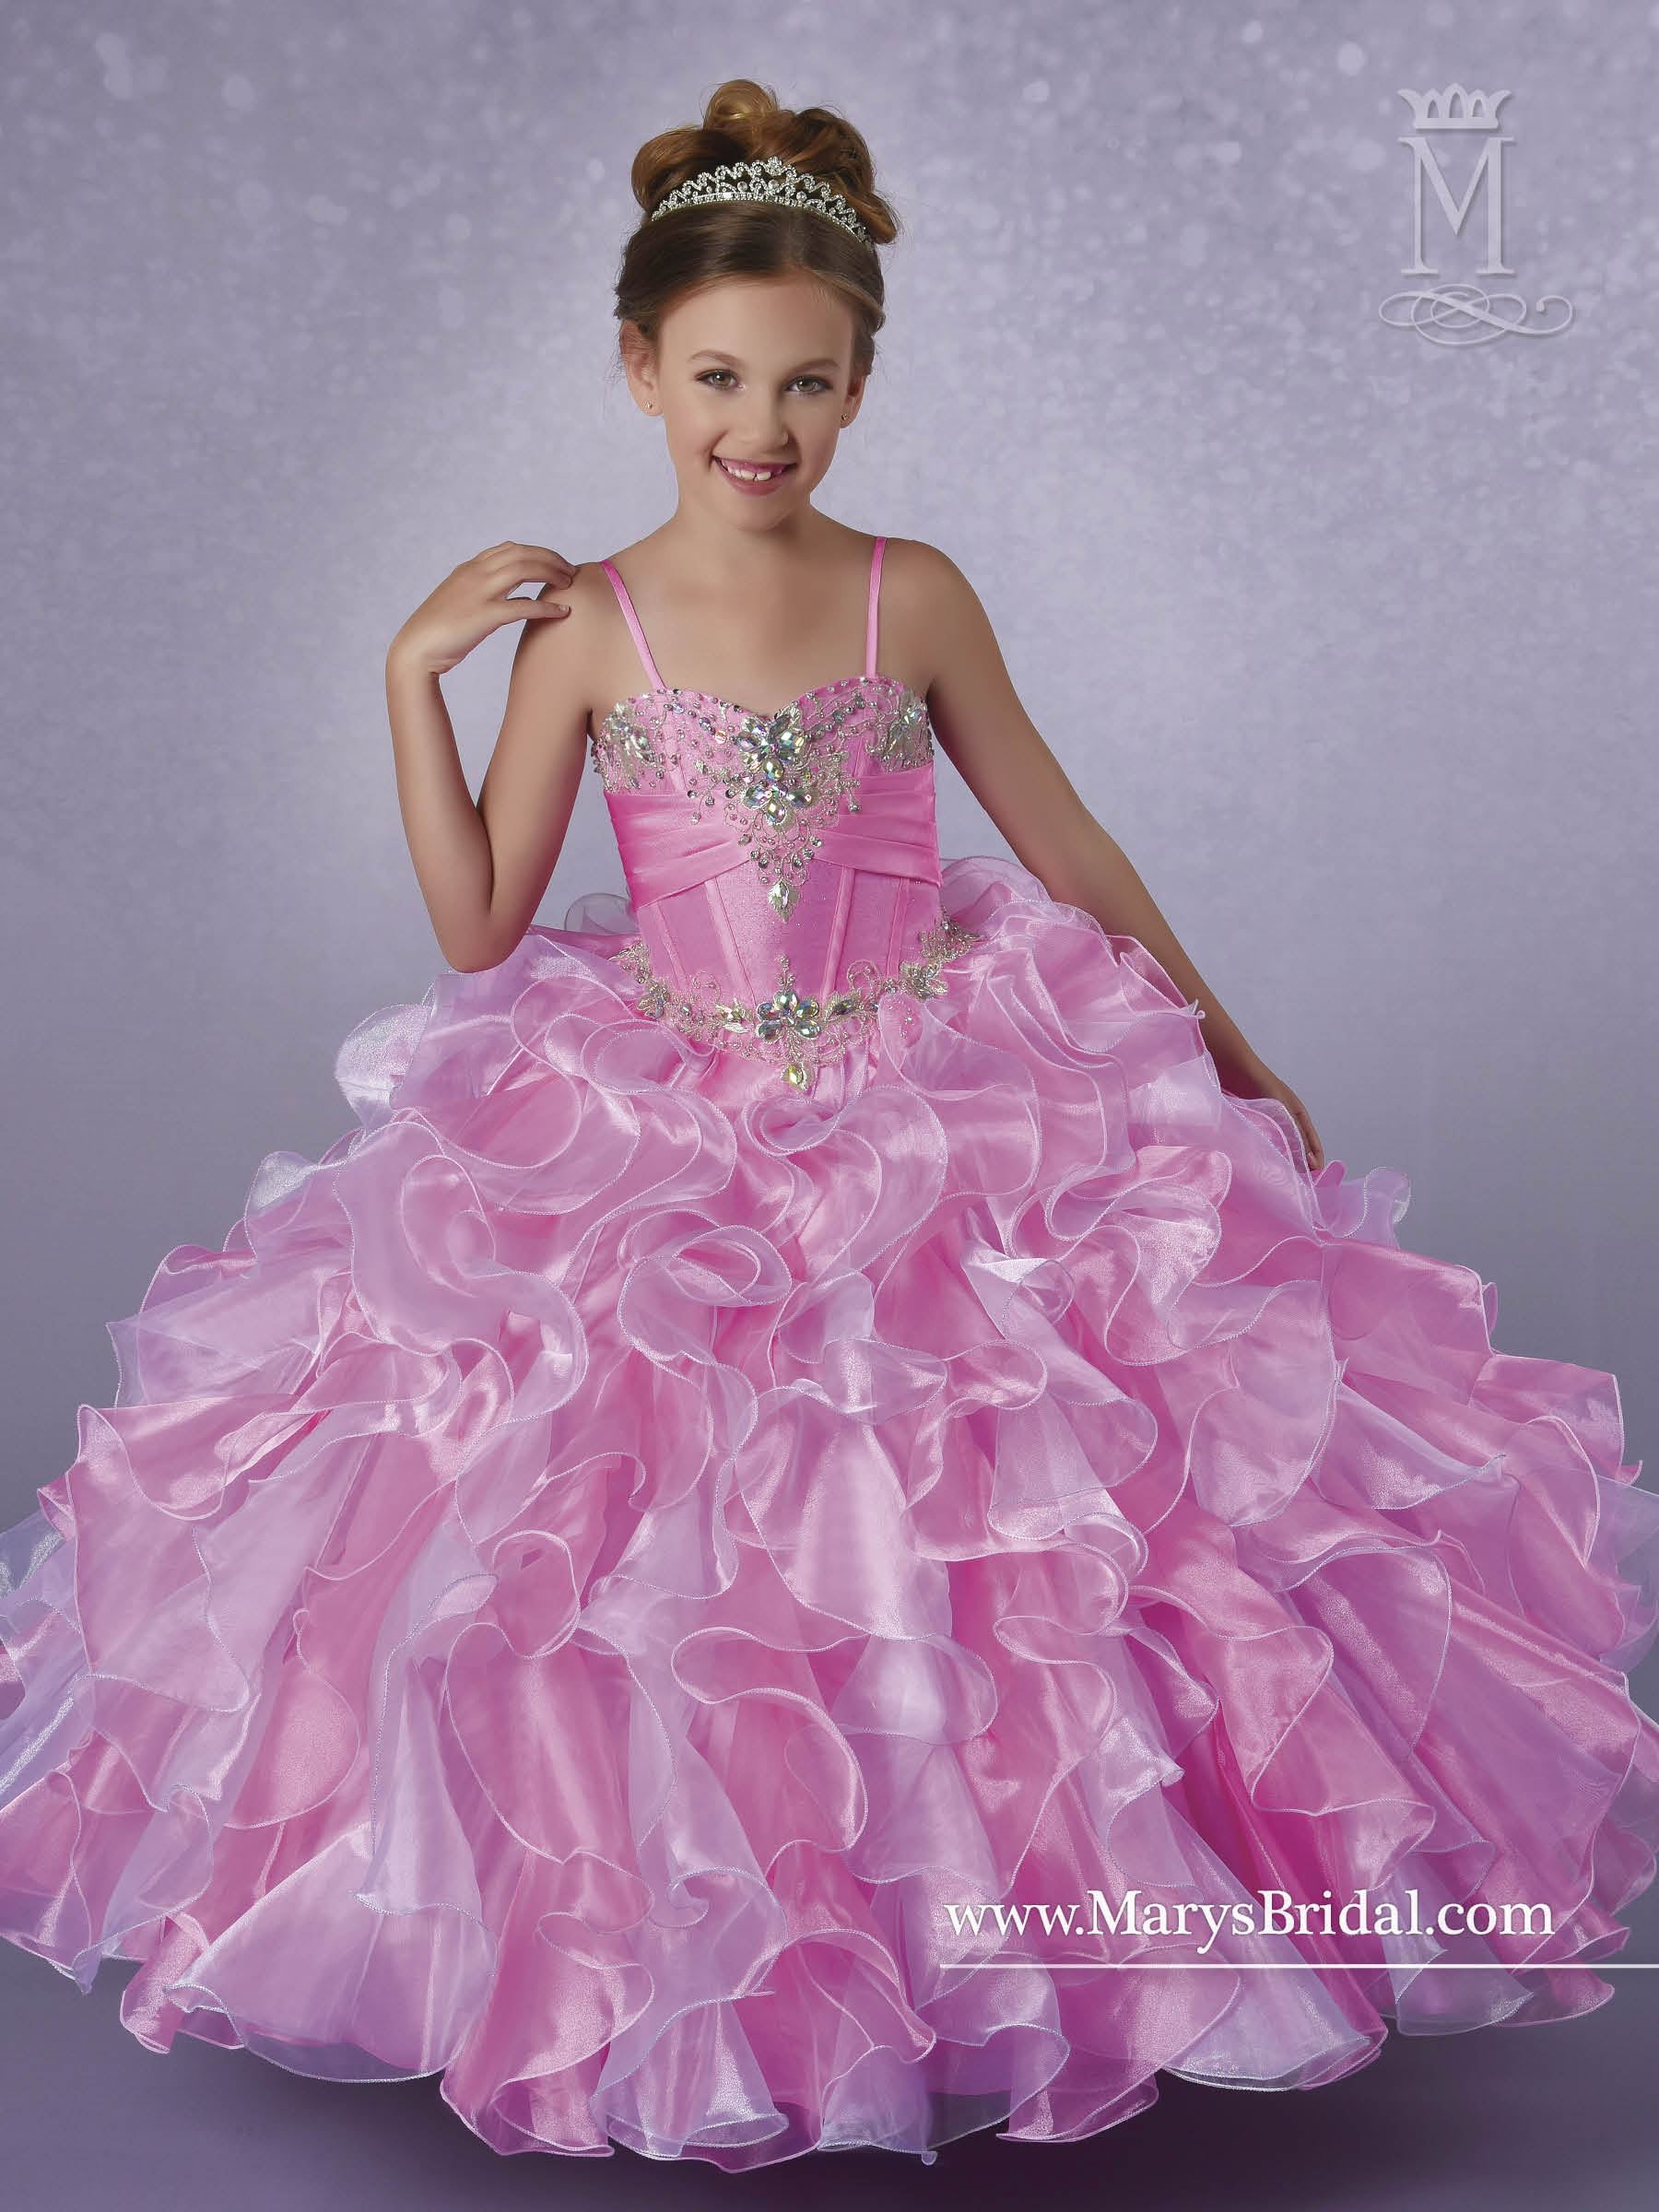 Angel Flower Girl Dresses | Style - FP182 in Hot Pink/White or All ...